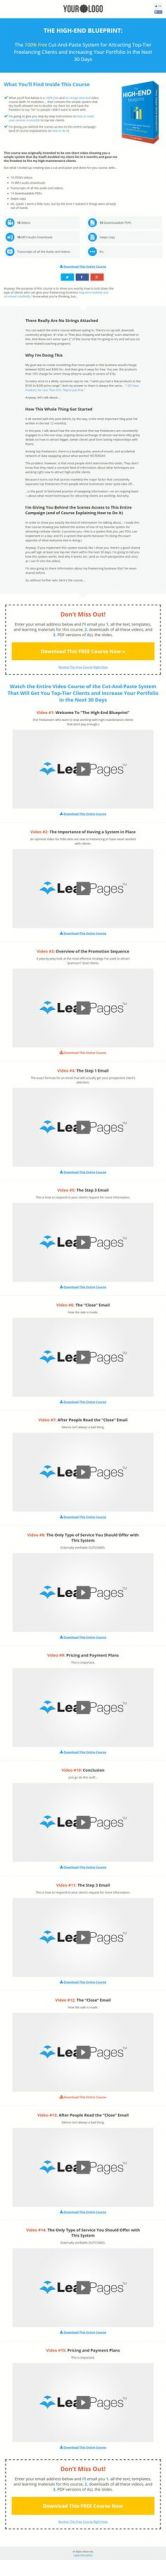 591ba9a1ce9785ceae5f1326bbe7262c page template templates